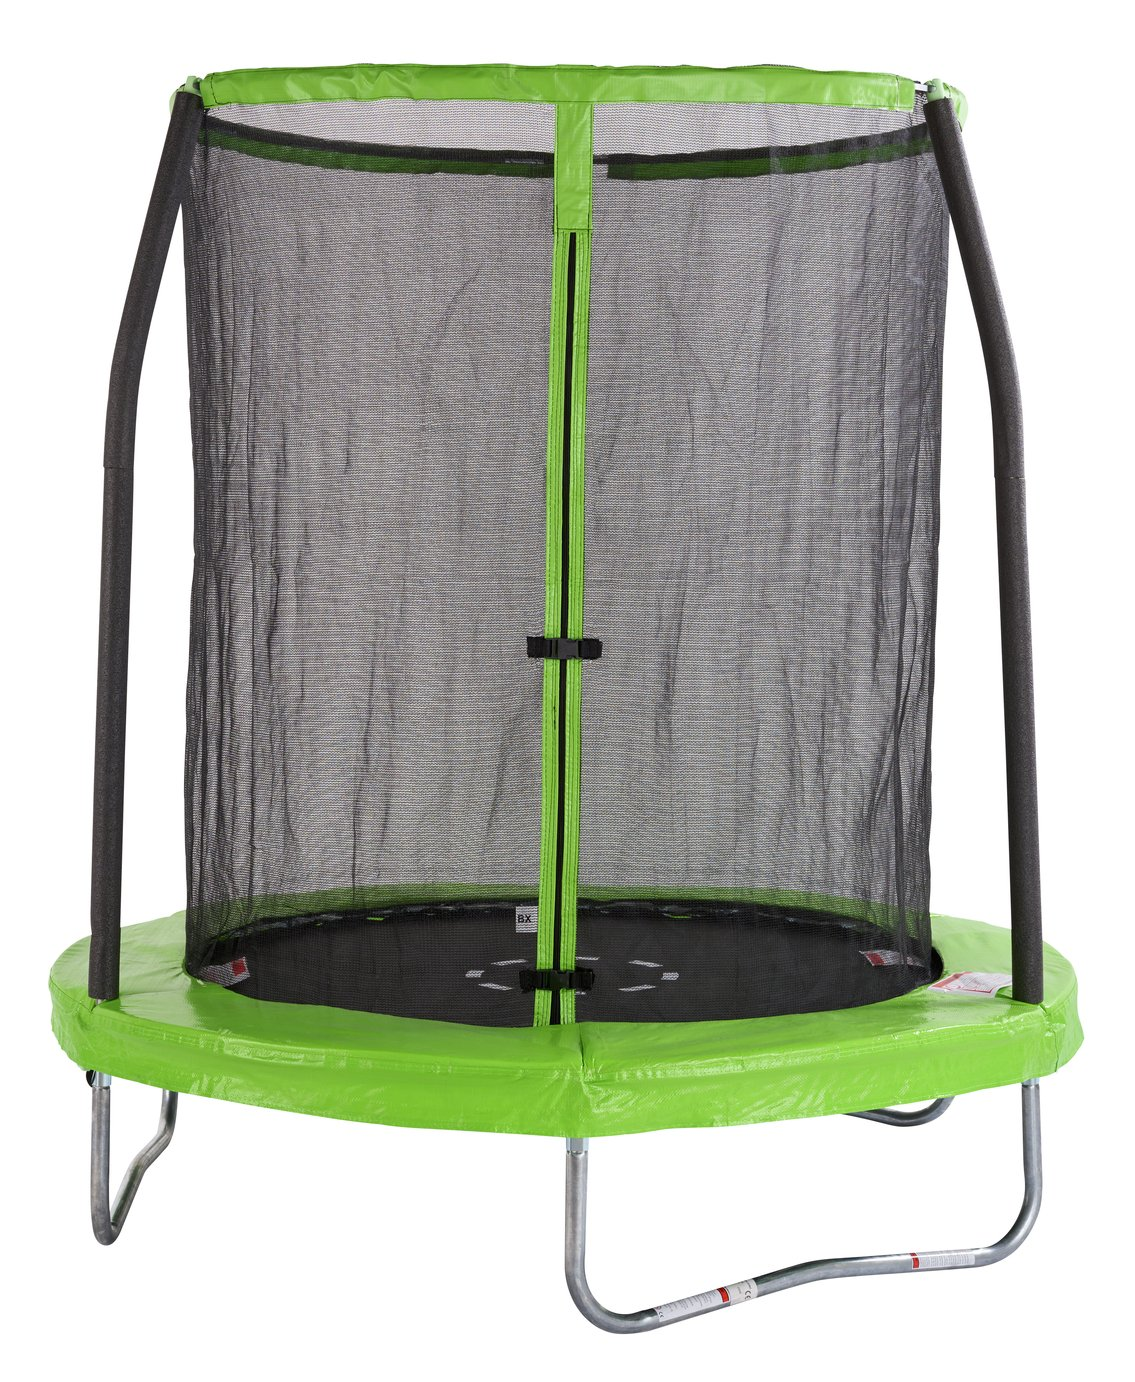 Chad Valley 6ft Trampoline with Folding Enclosure